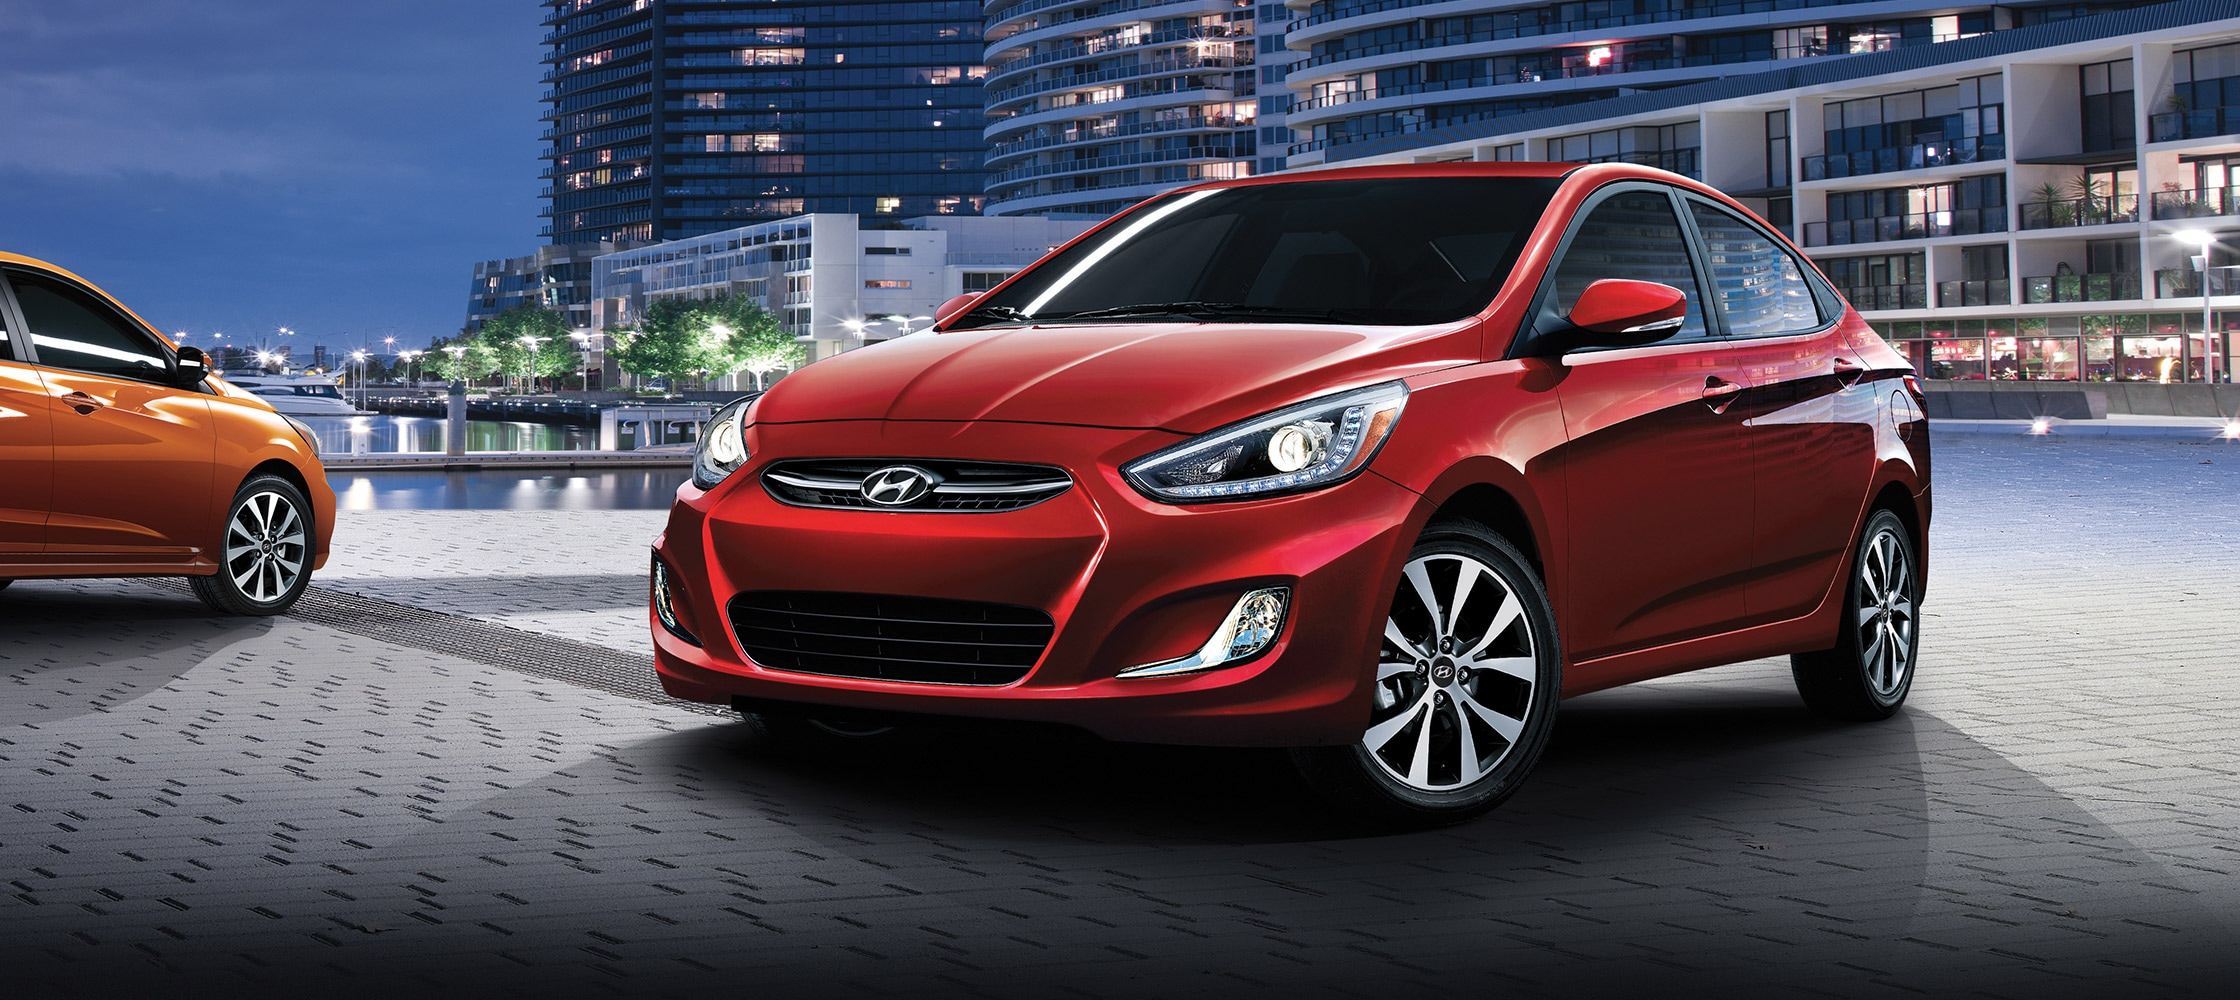 Exterior side picture of red Hyundai Accent Sedan 2017 at night